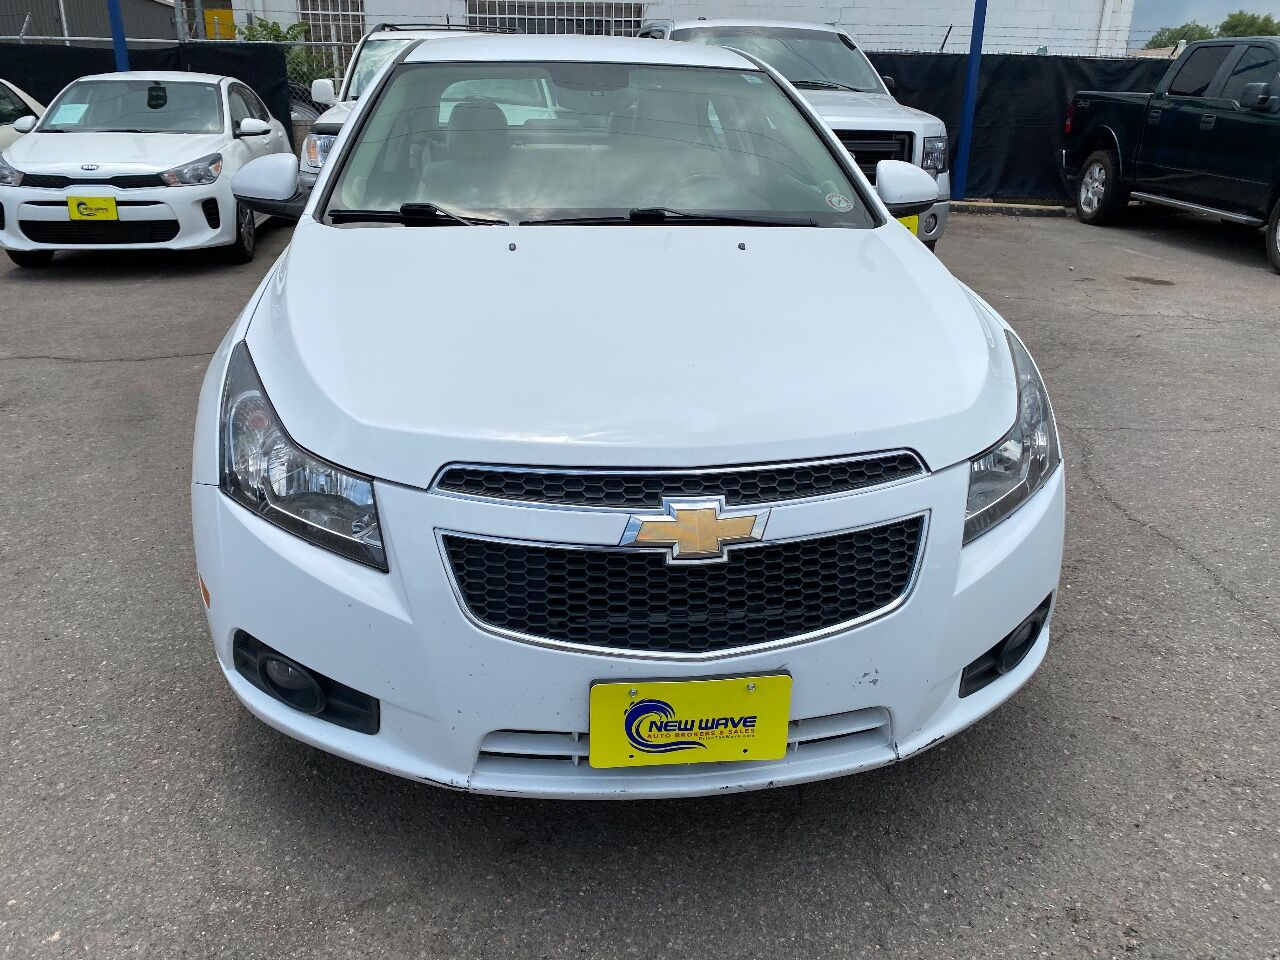 used 2014 Chevrolet Cruze car, priced at $12,288